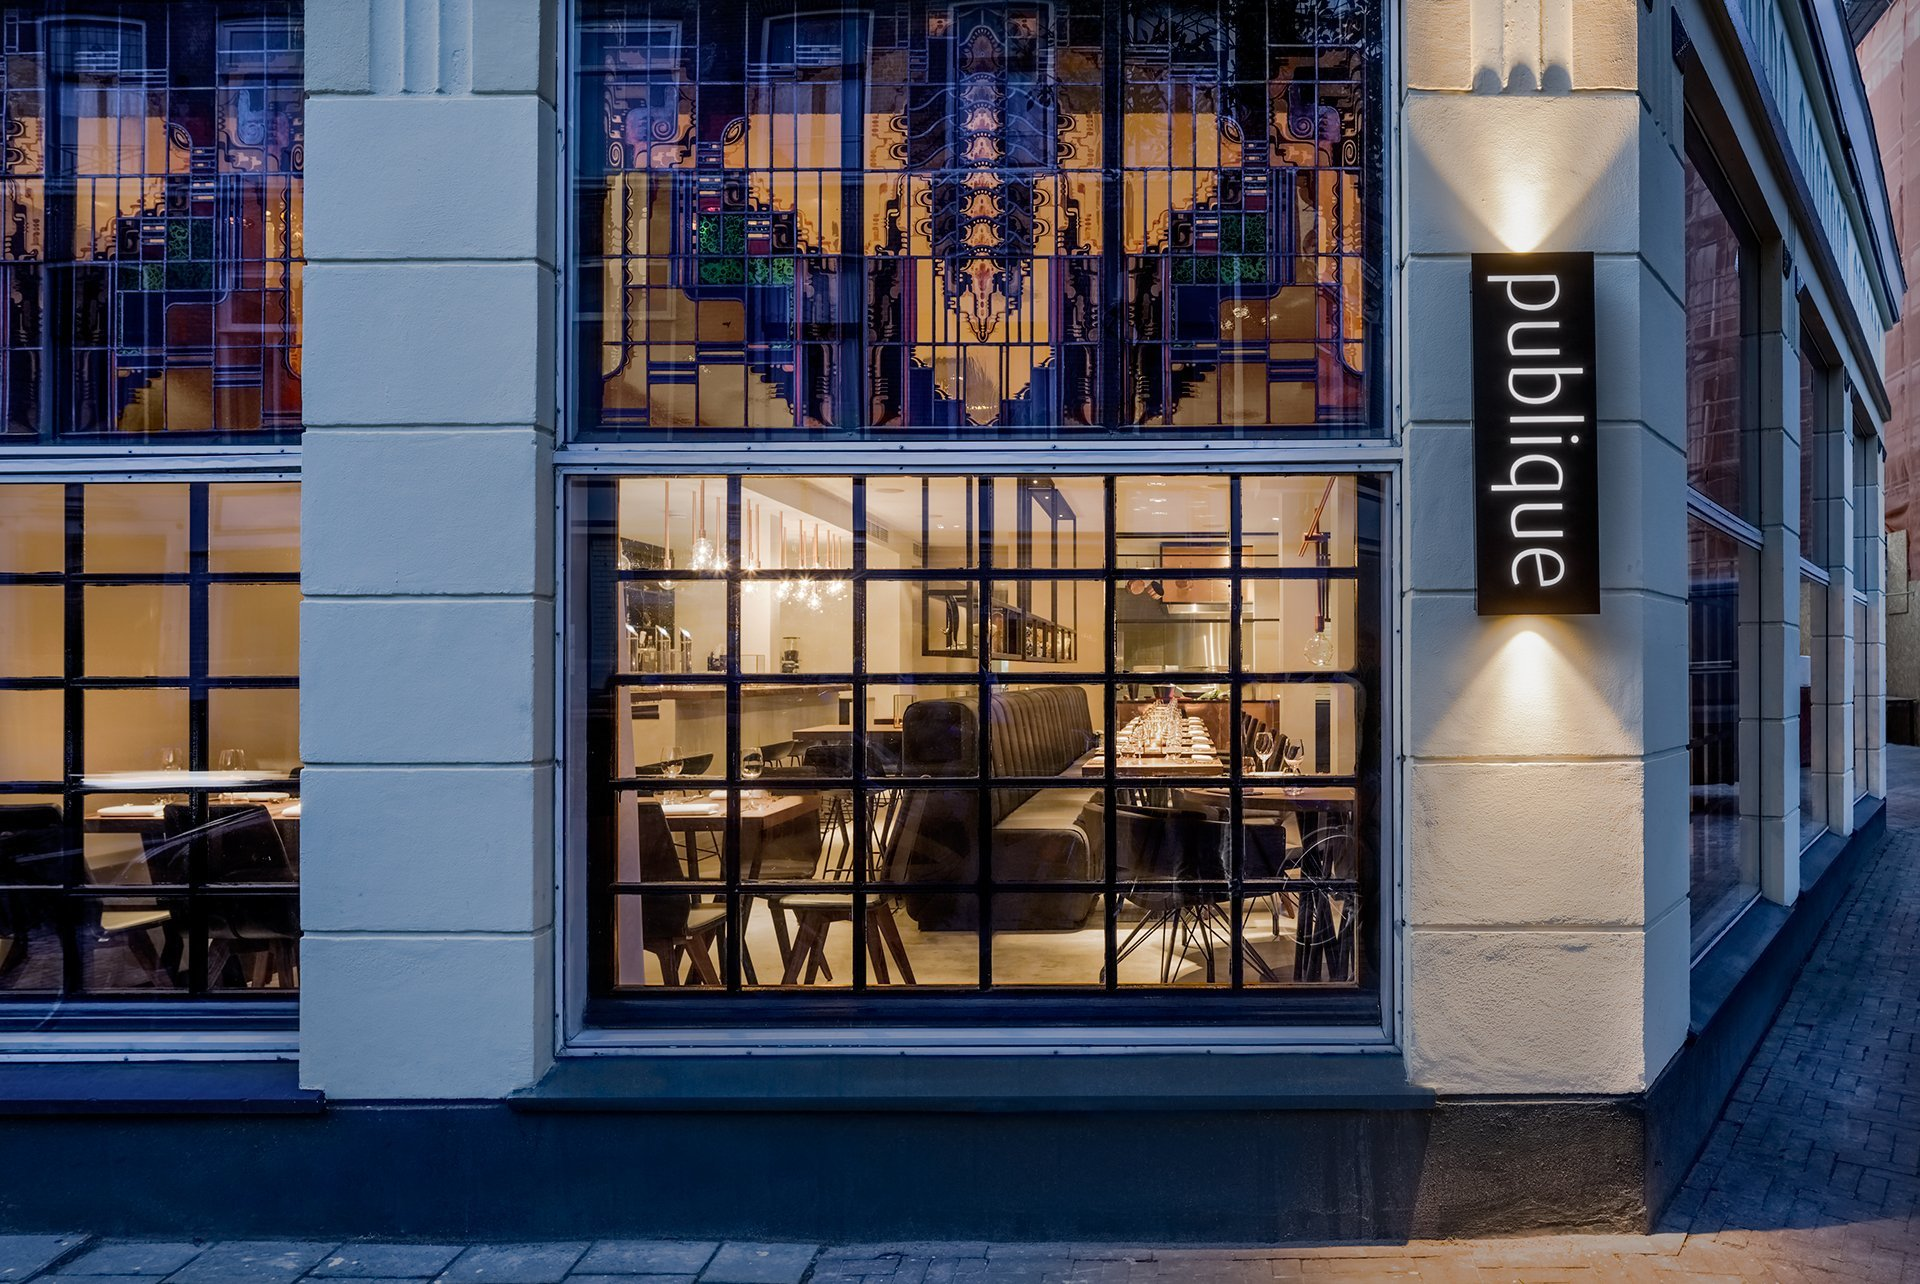 The concept is based on stained glass, with the copper colour reappearing throughout the restaurant design.